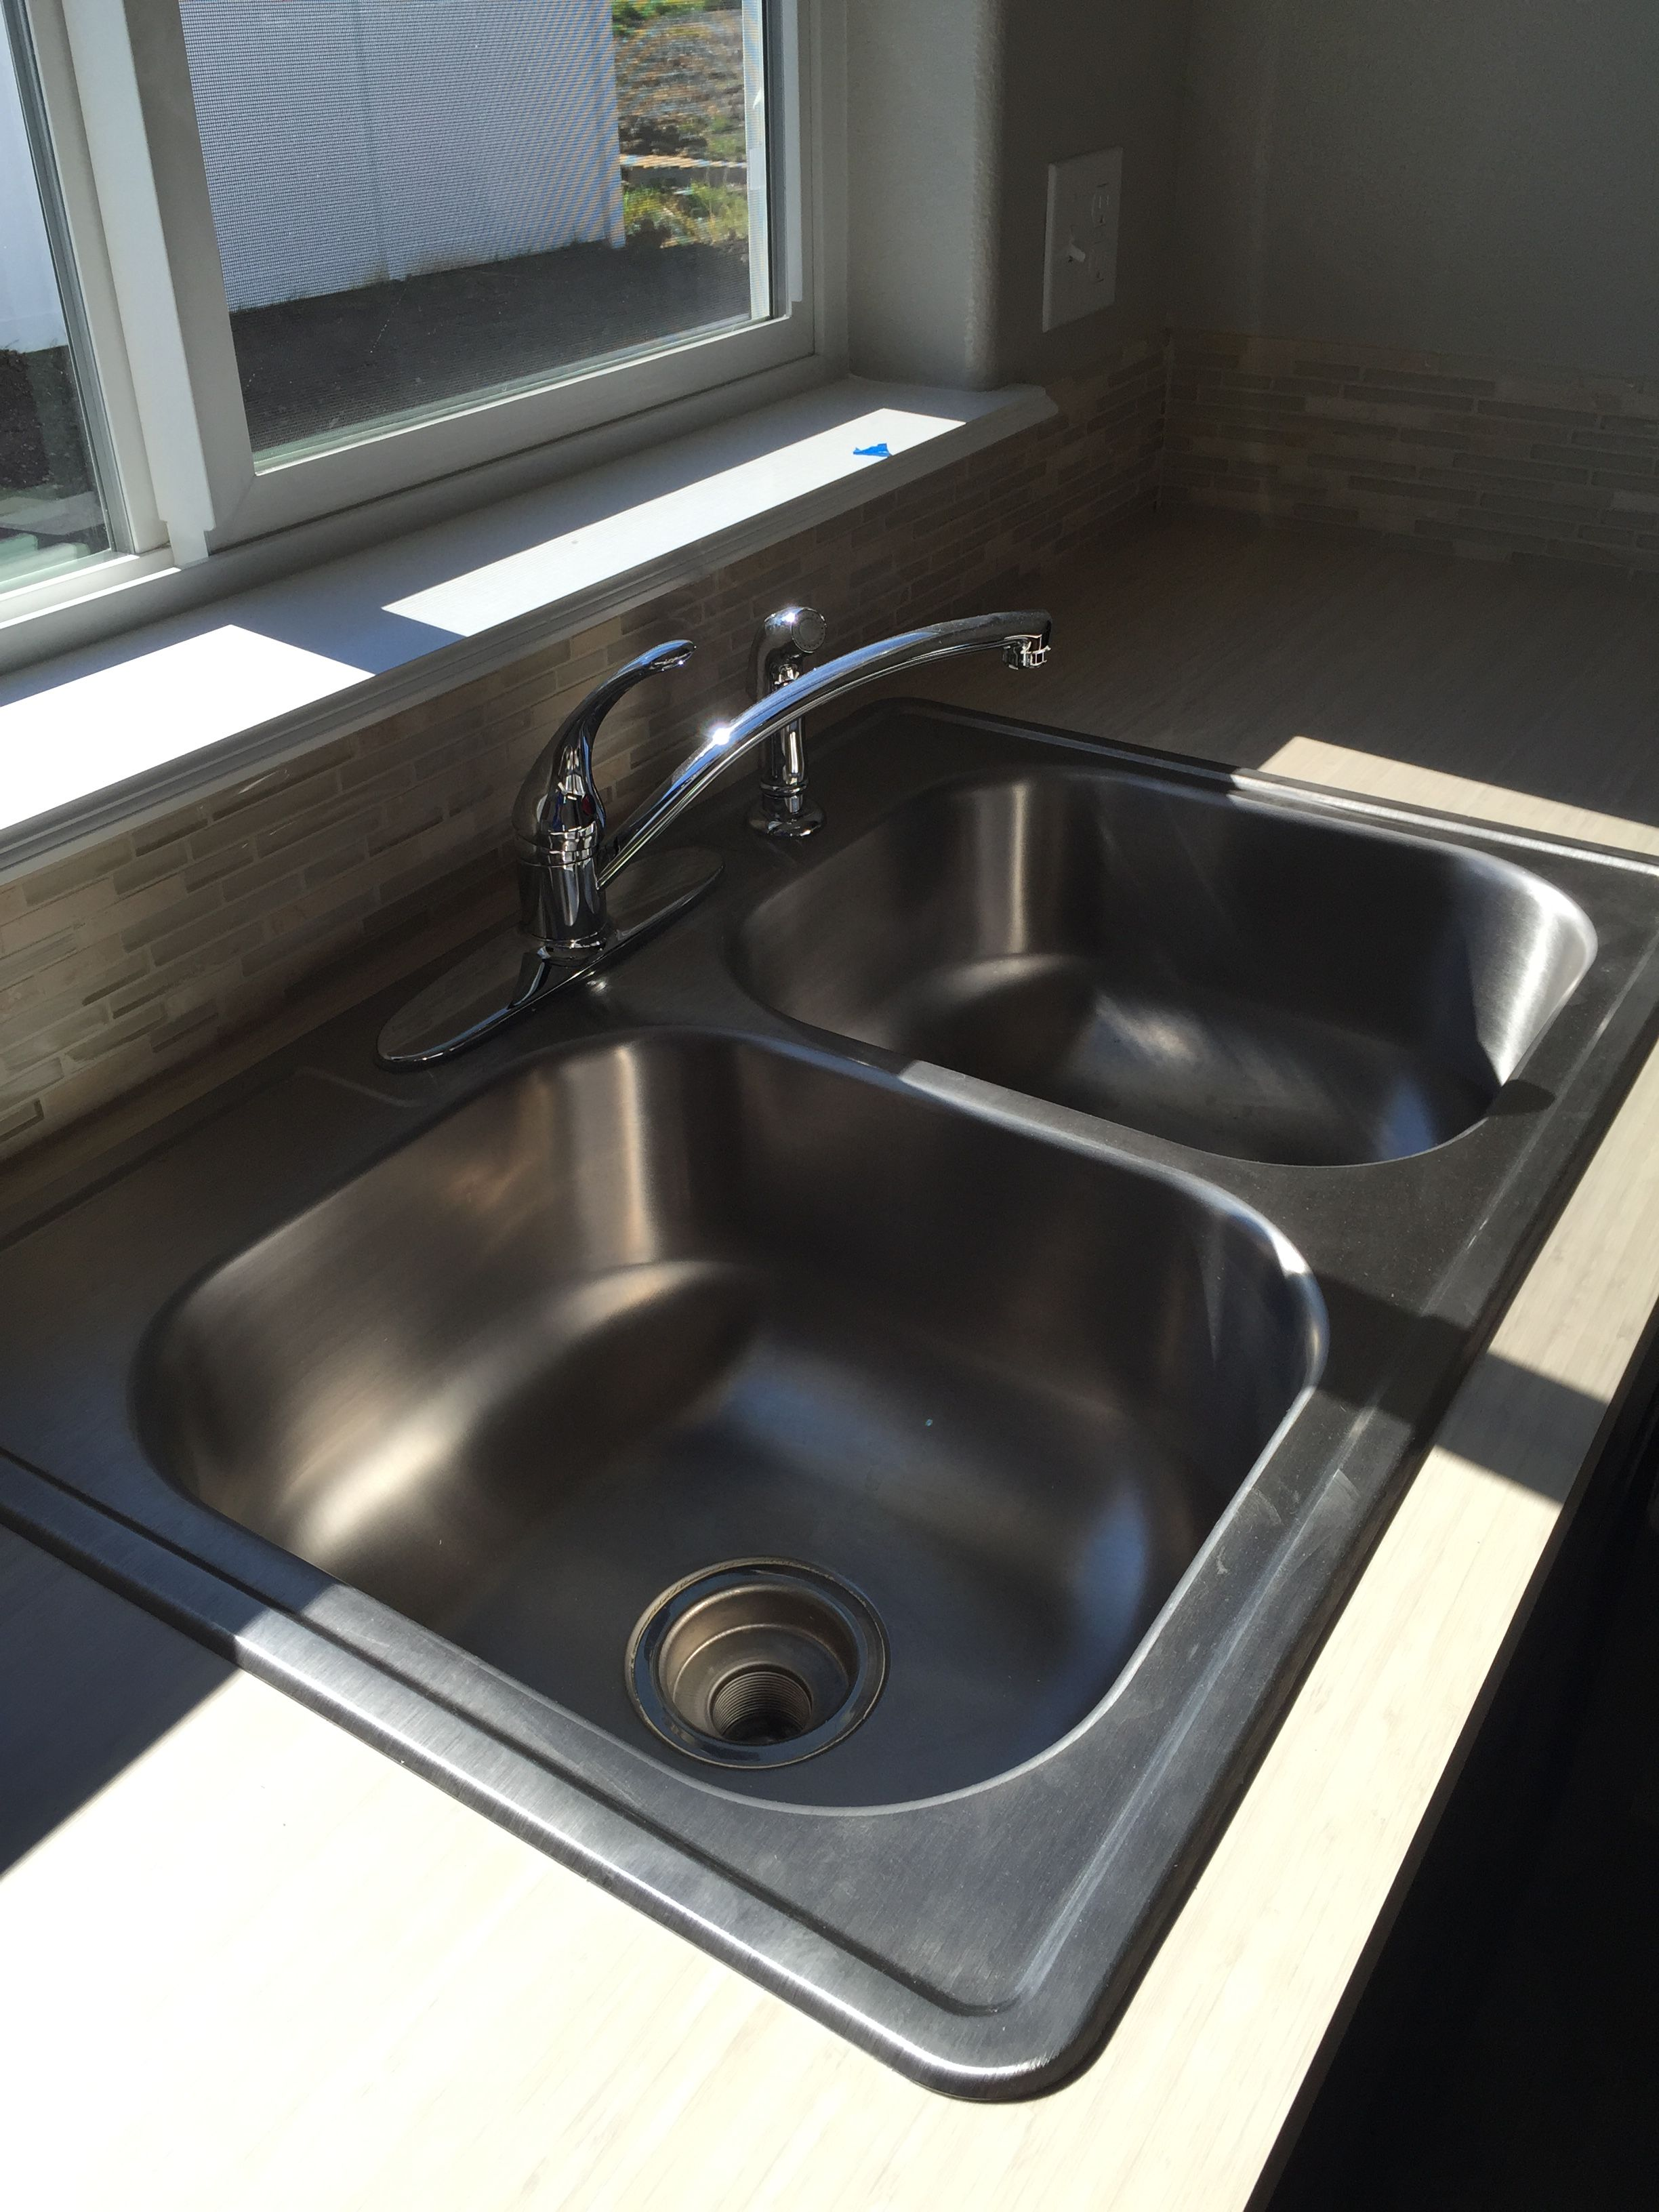 Cbh Homes Standard Deep Stainless Steel Sink With Standard Faucet